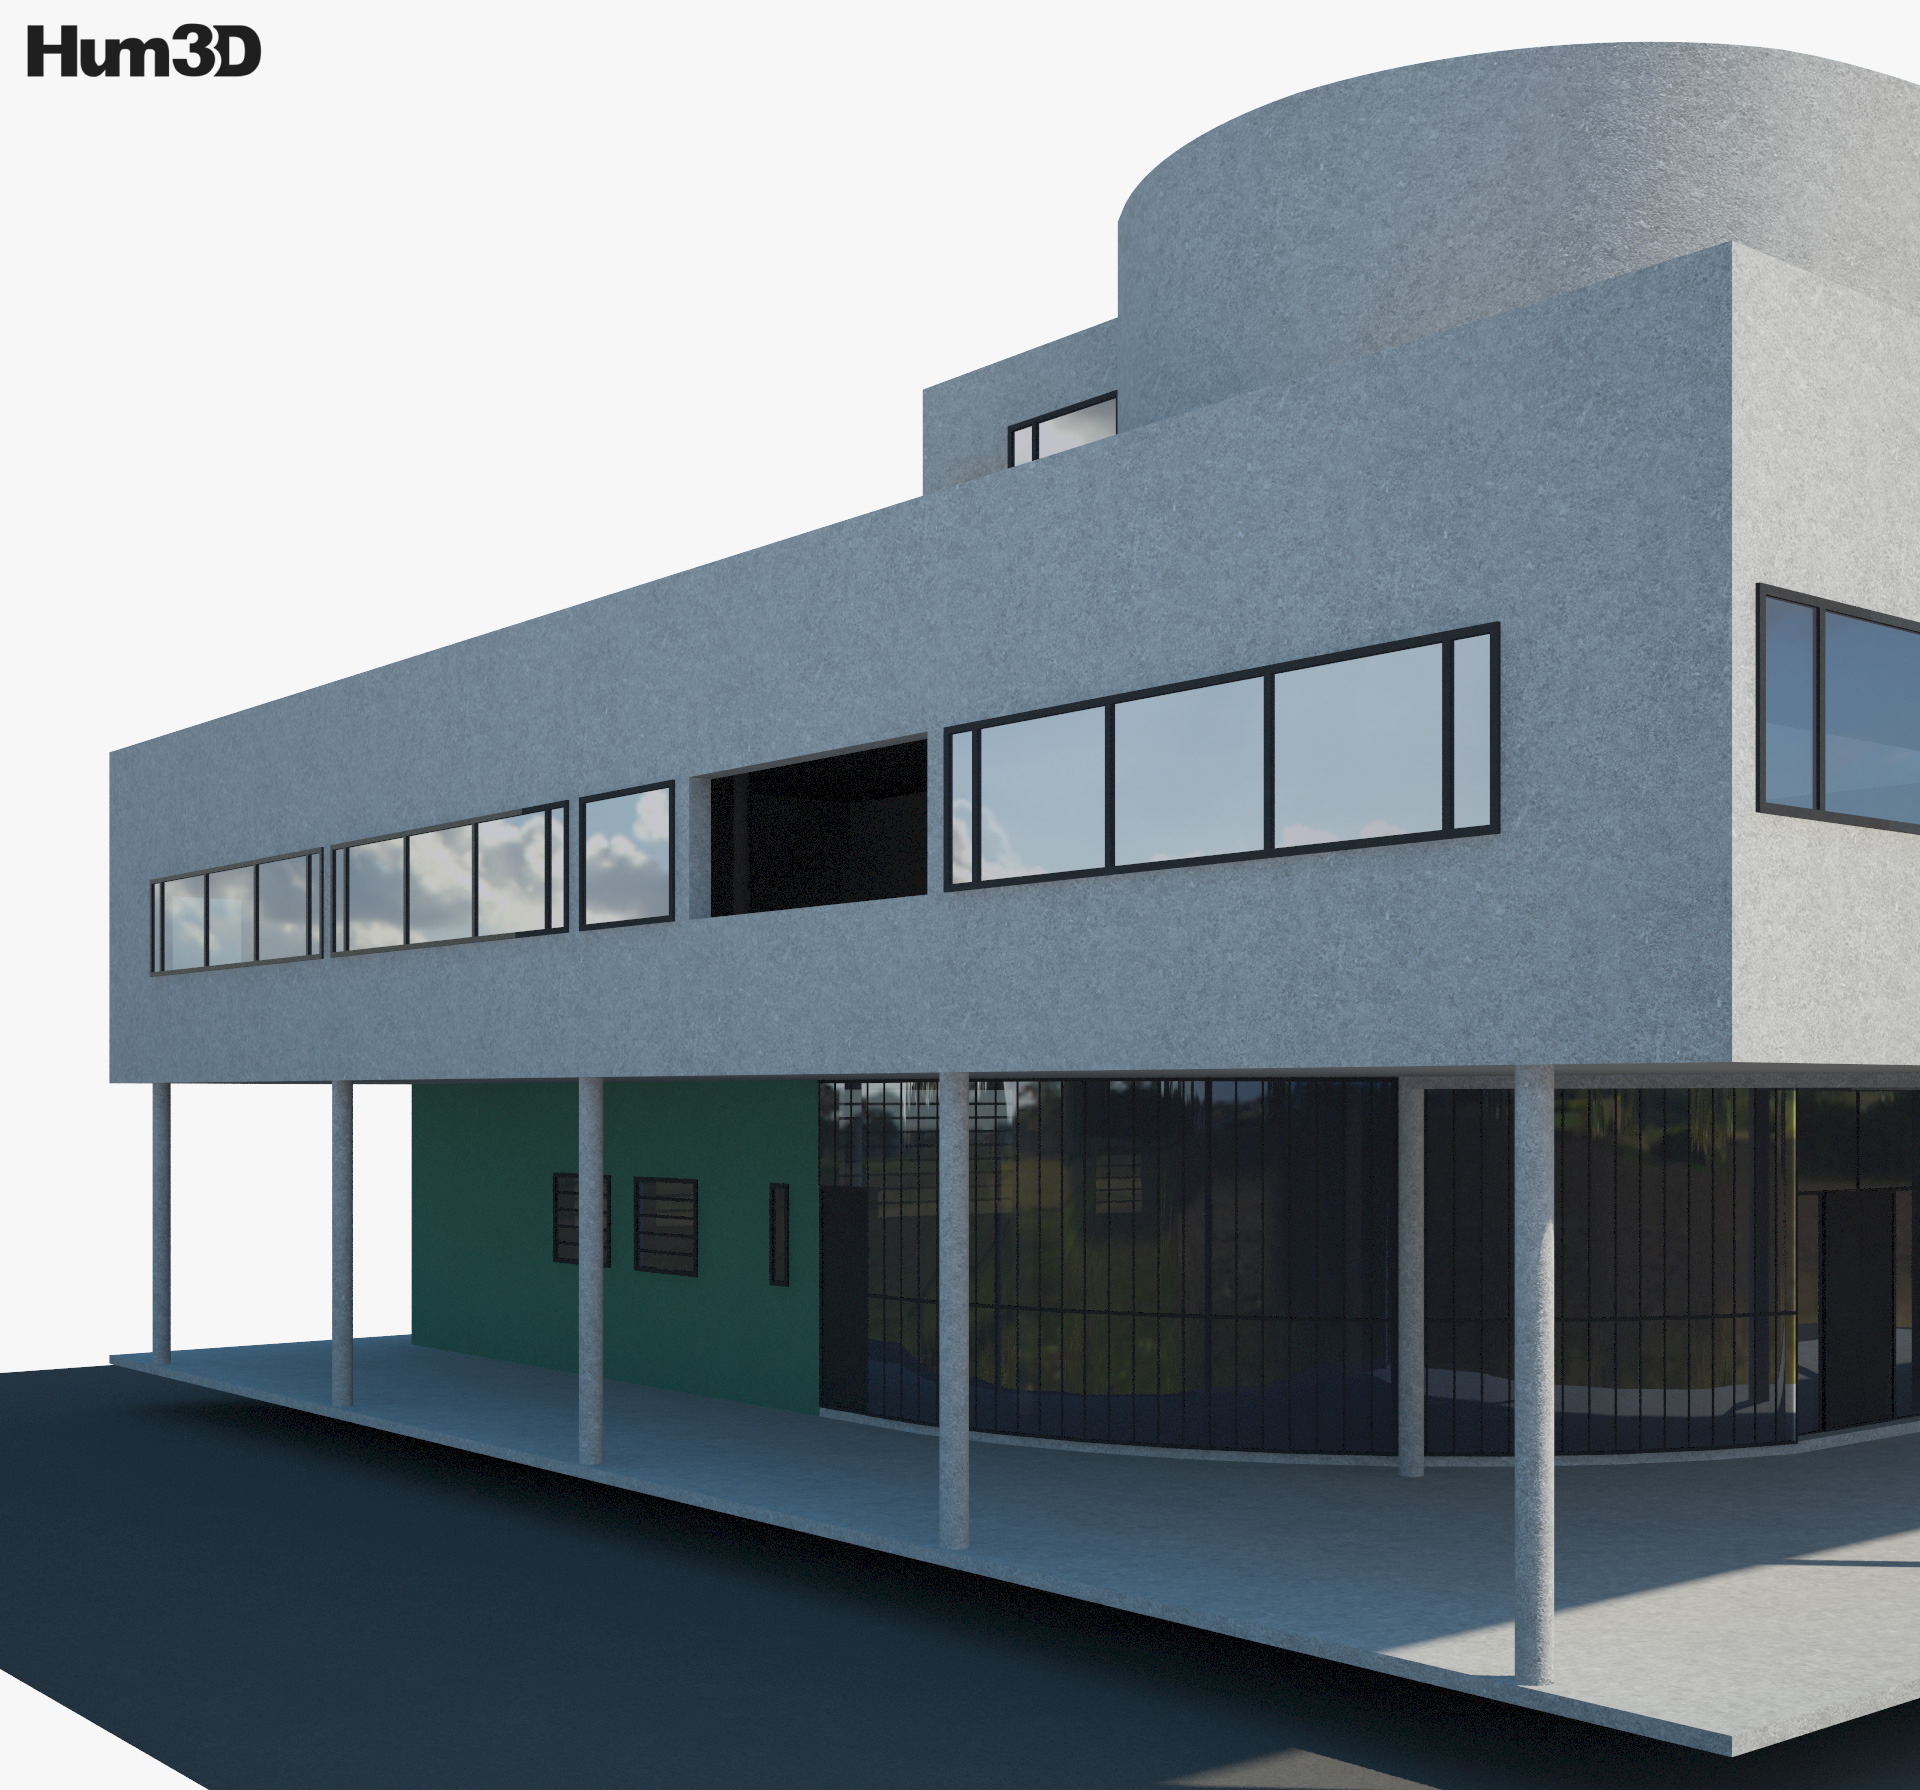 Villa Savoye 3d model